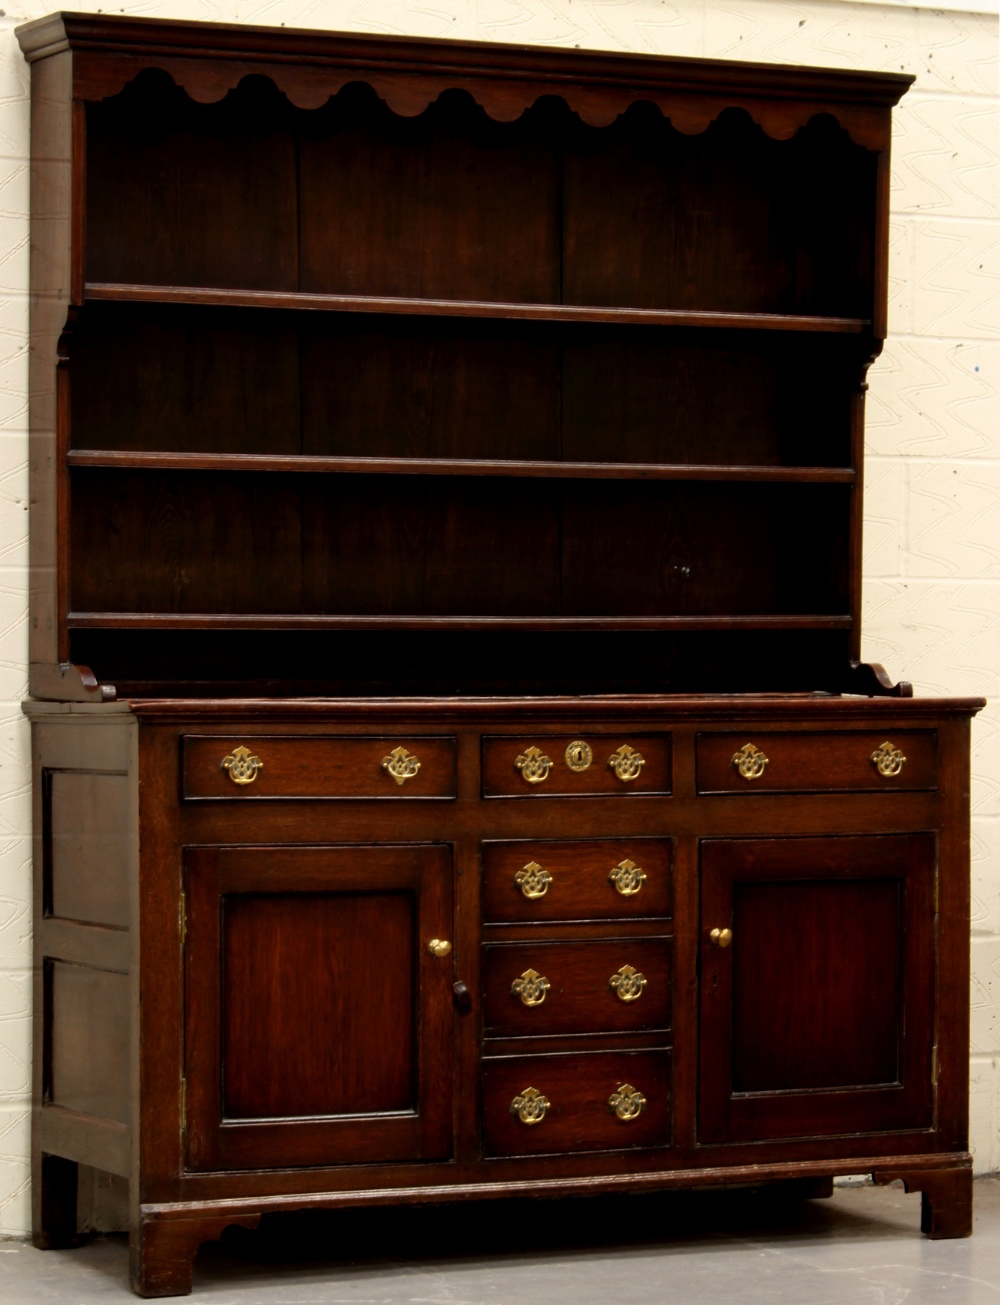 Lot 112 - Property of a deceased estate - a George III oak two-part Welsh dresser, 63ins. (160cms.) wide (